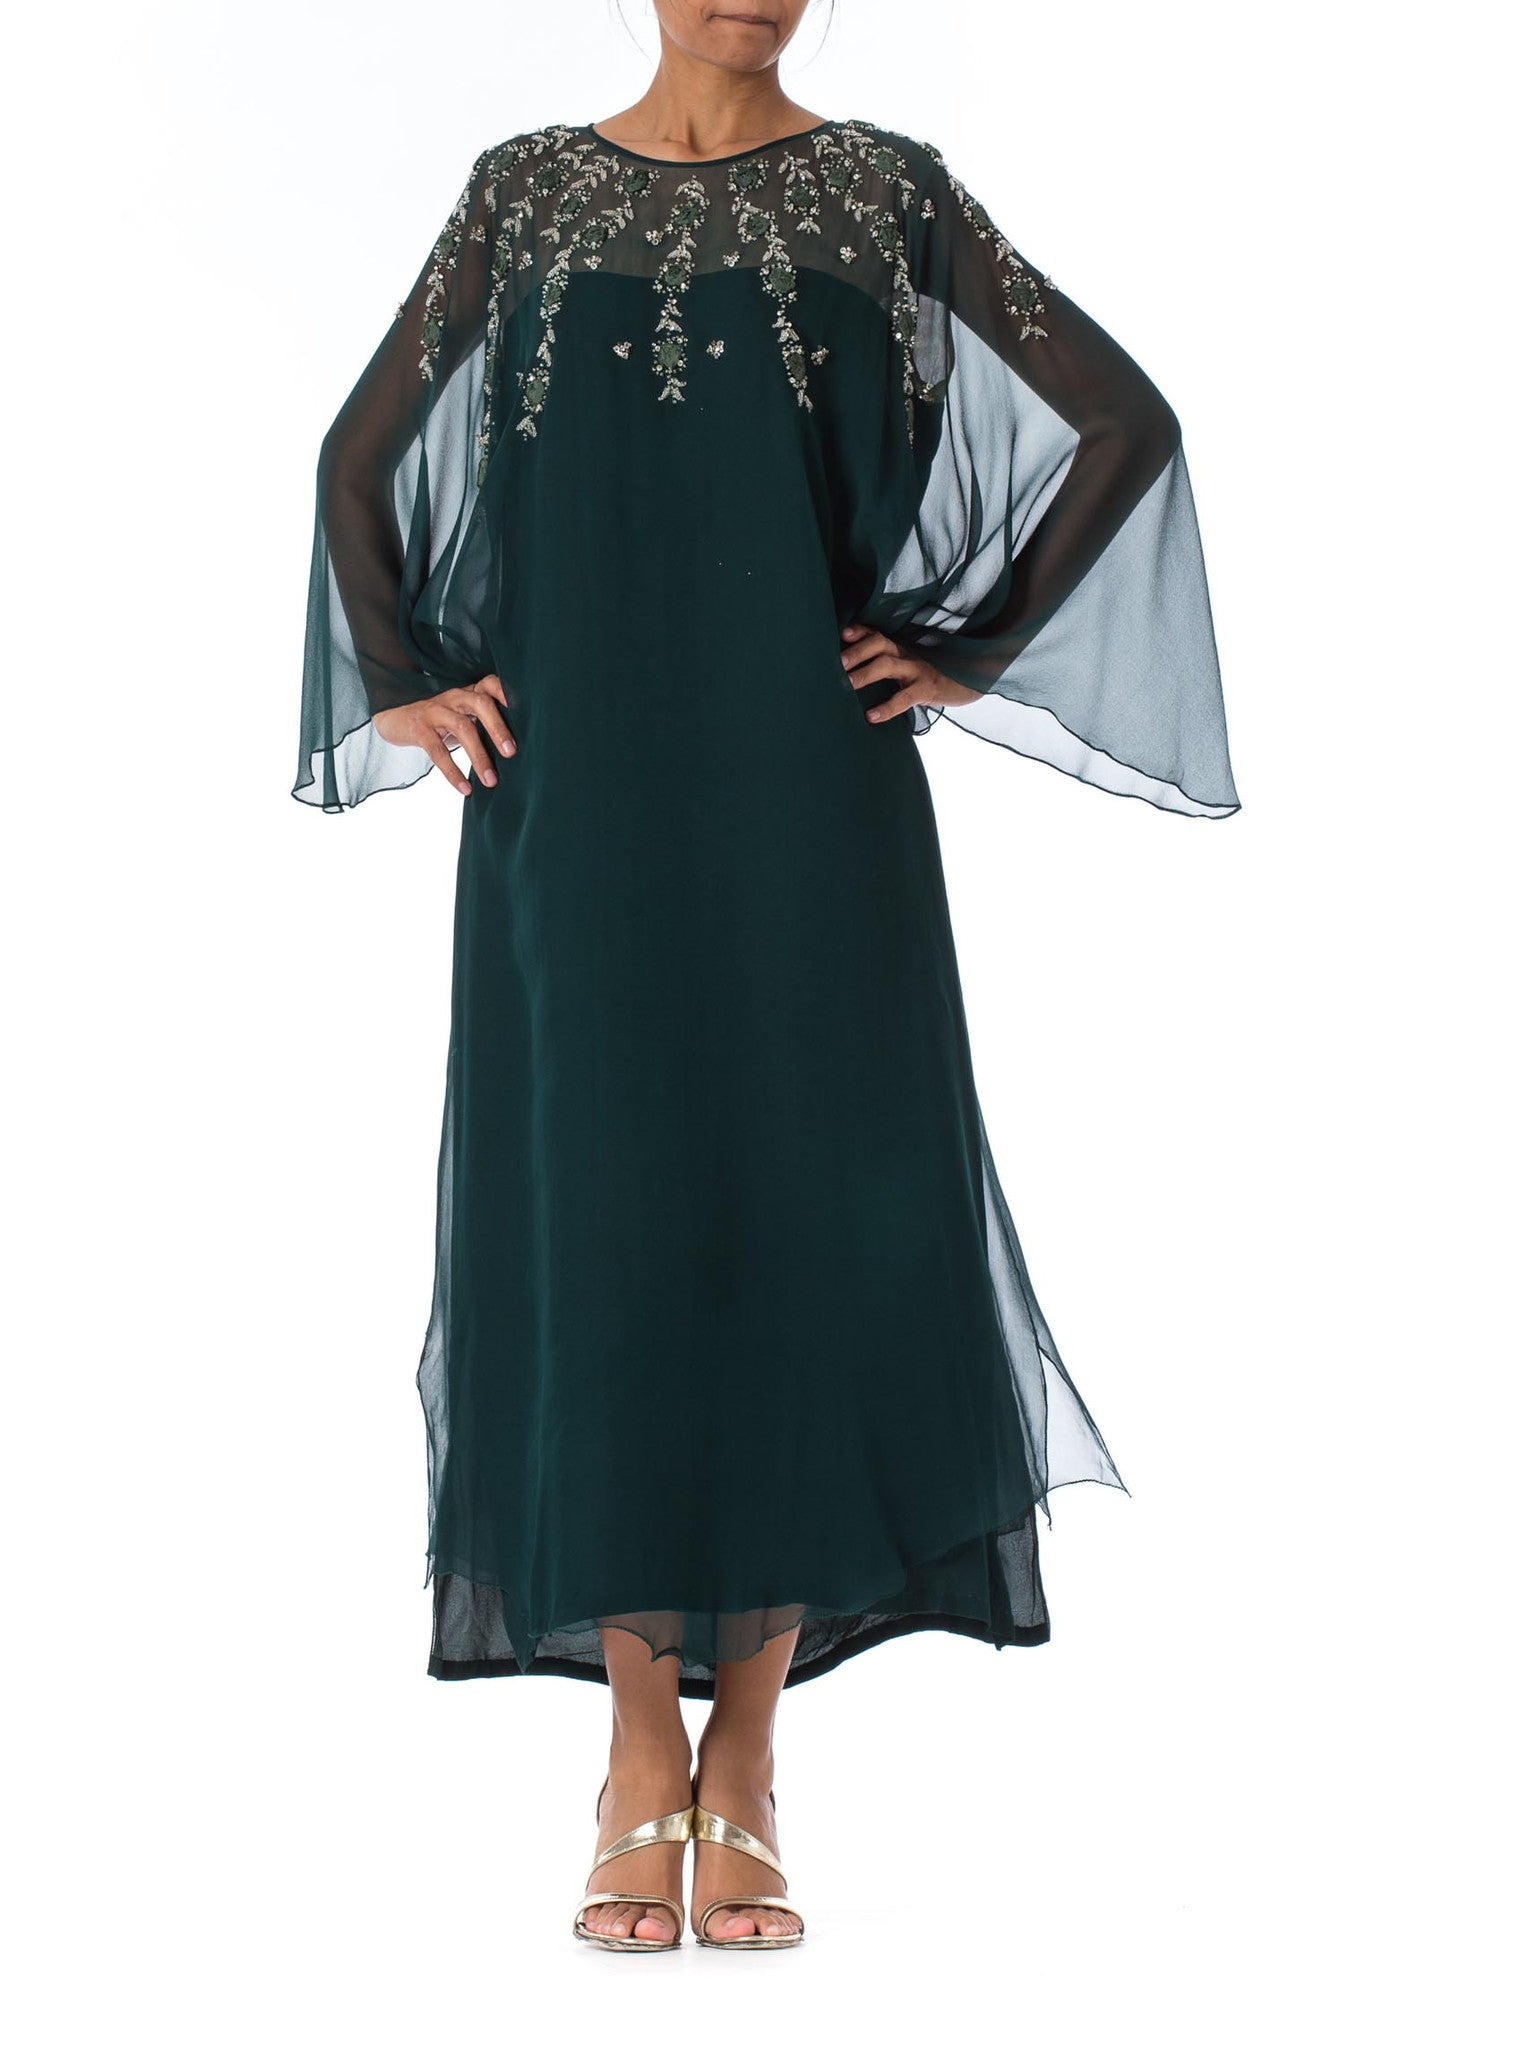 1980s Beaded Embellished Rose Appliqué Green Chiffon Sheer Long Sleeve Gown